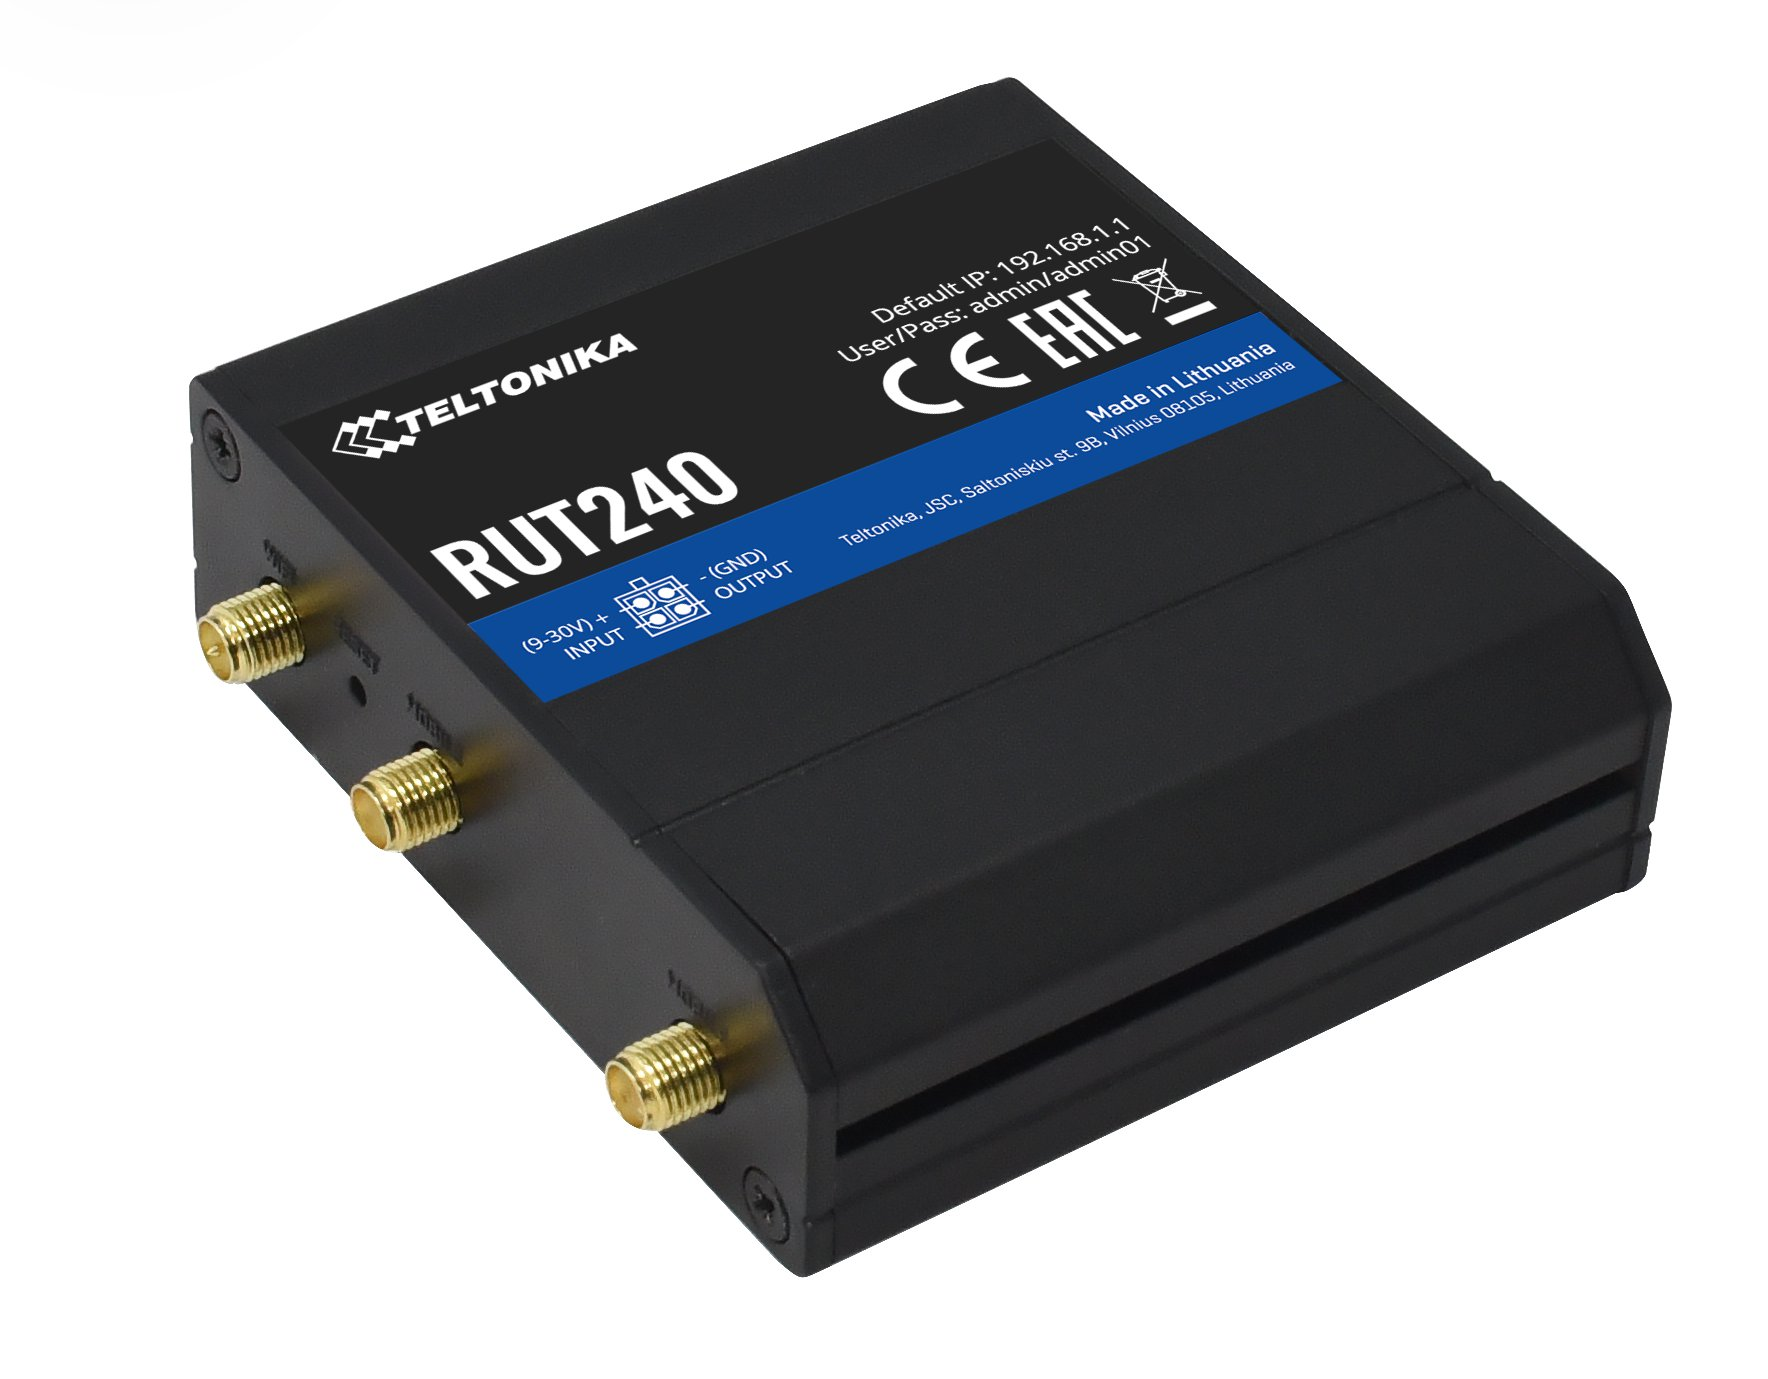 RUT240 LTE Router Side Angle RMS Bundle